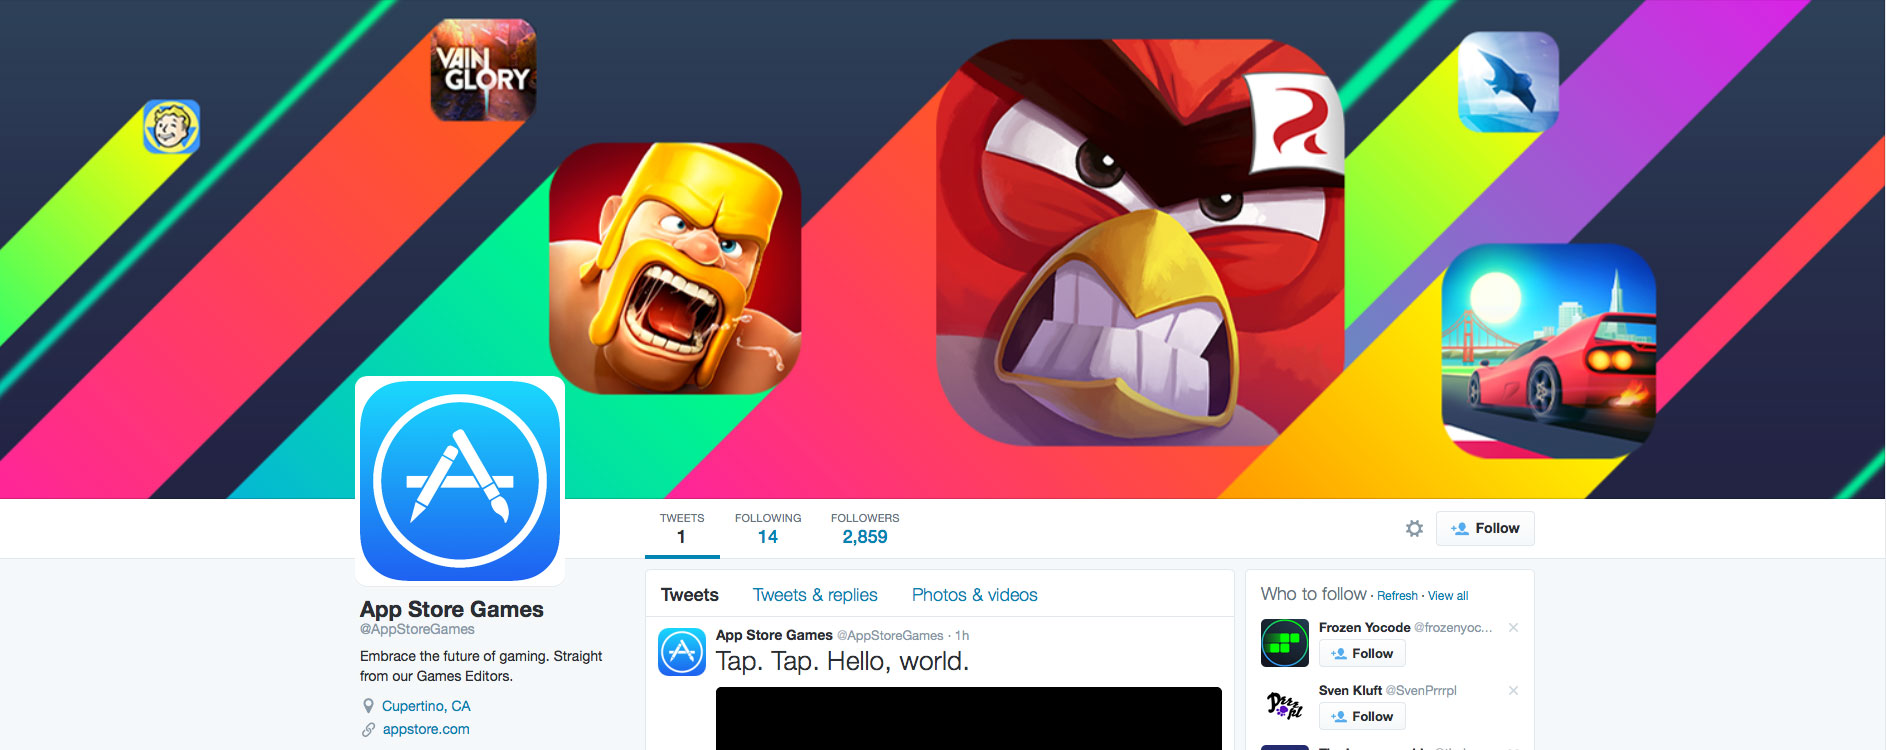 Apple launches a curated Twitter account for the App Store gaming section